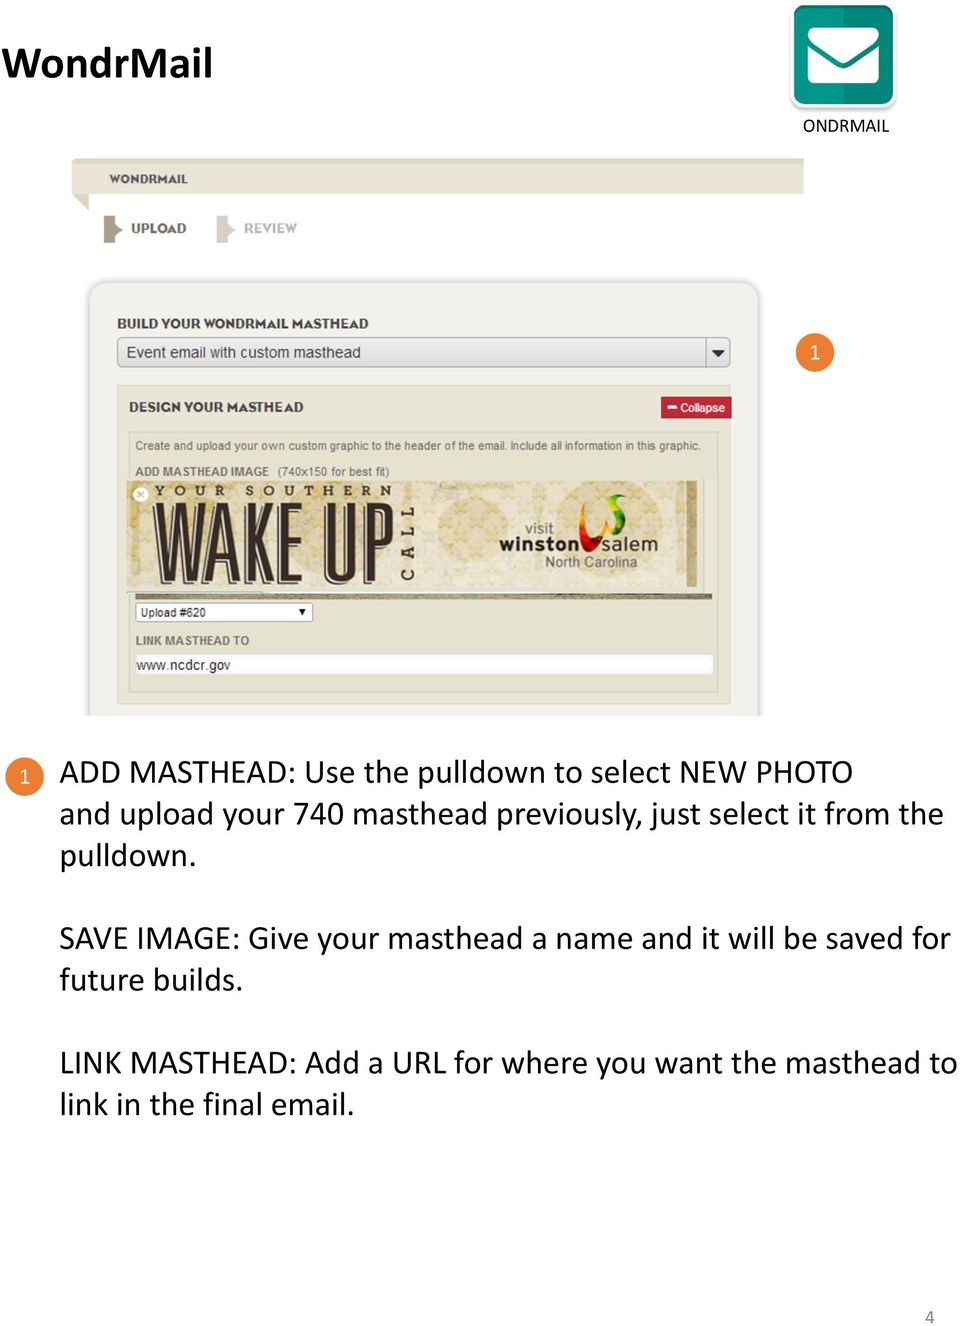 SAVE IMAGE: Give your masthead a name and it will be saved for future